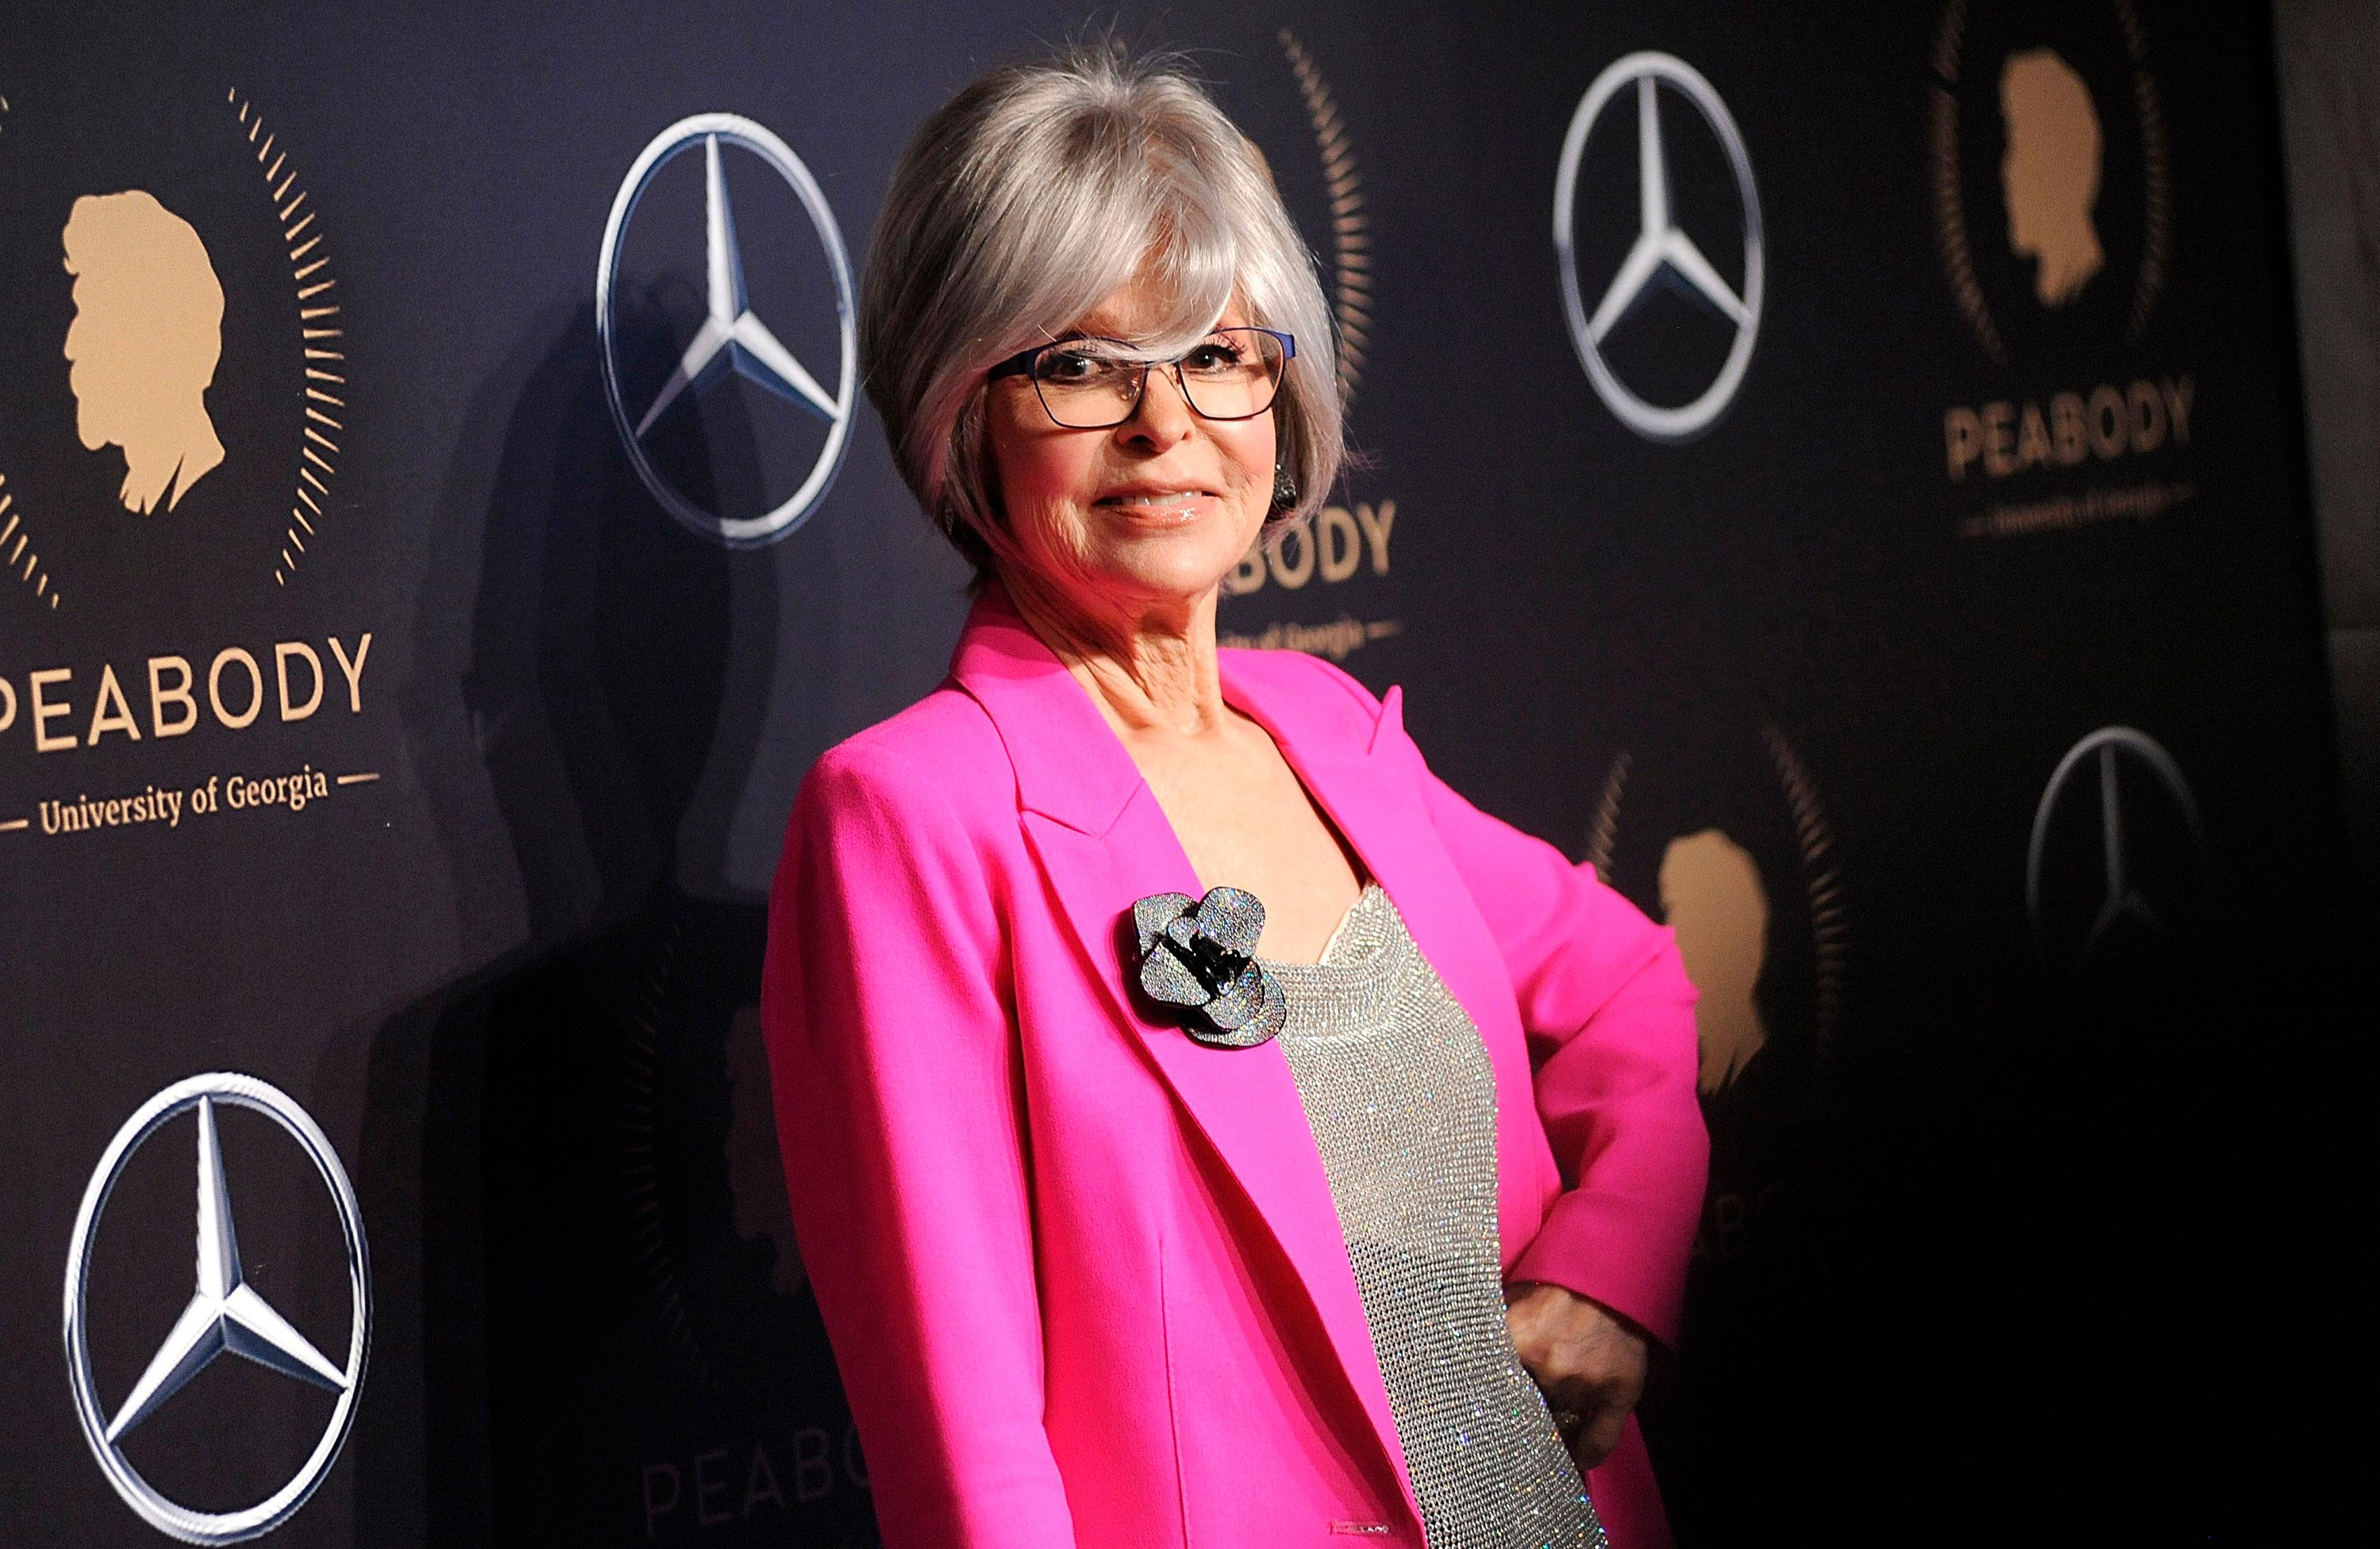 FILE - This May 18, 2019 file photo shows actress Rita Moreno at the 78th annual Peabody Awards in New York. PBS announced Monday, July 29.  (Photo by Brad Barket/Invision/AP, File)